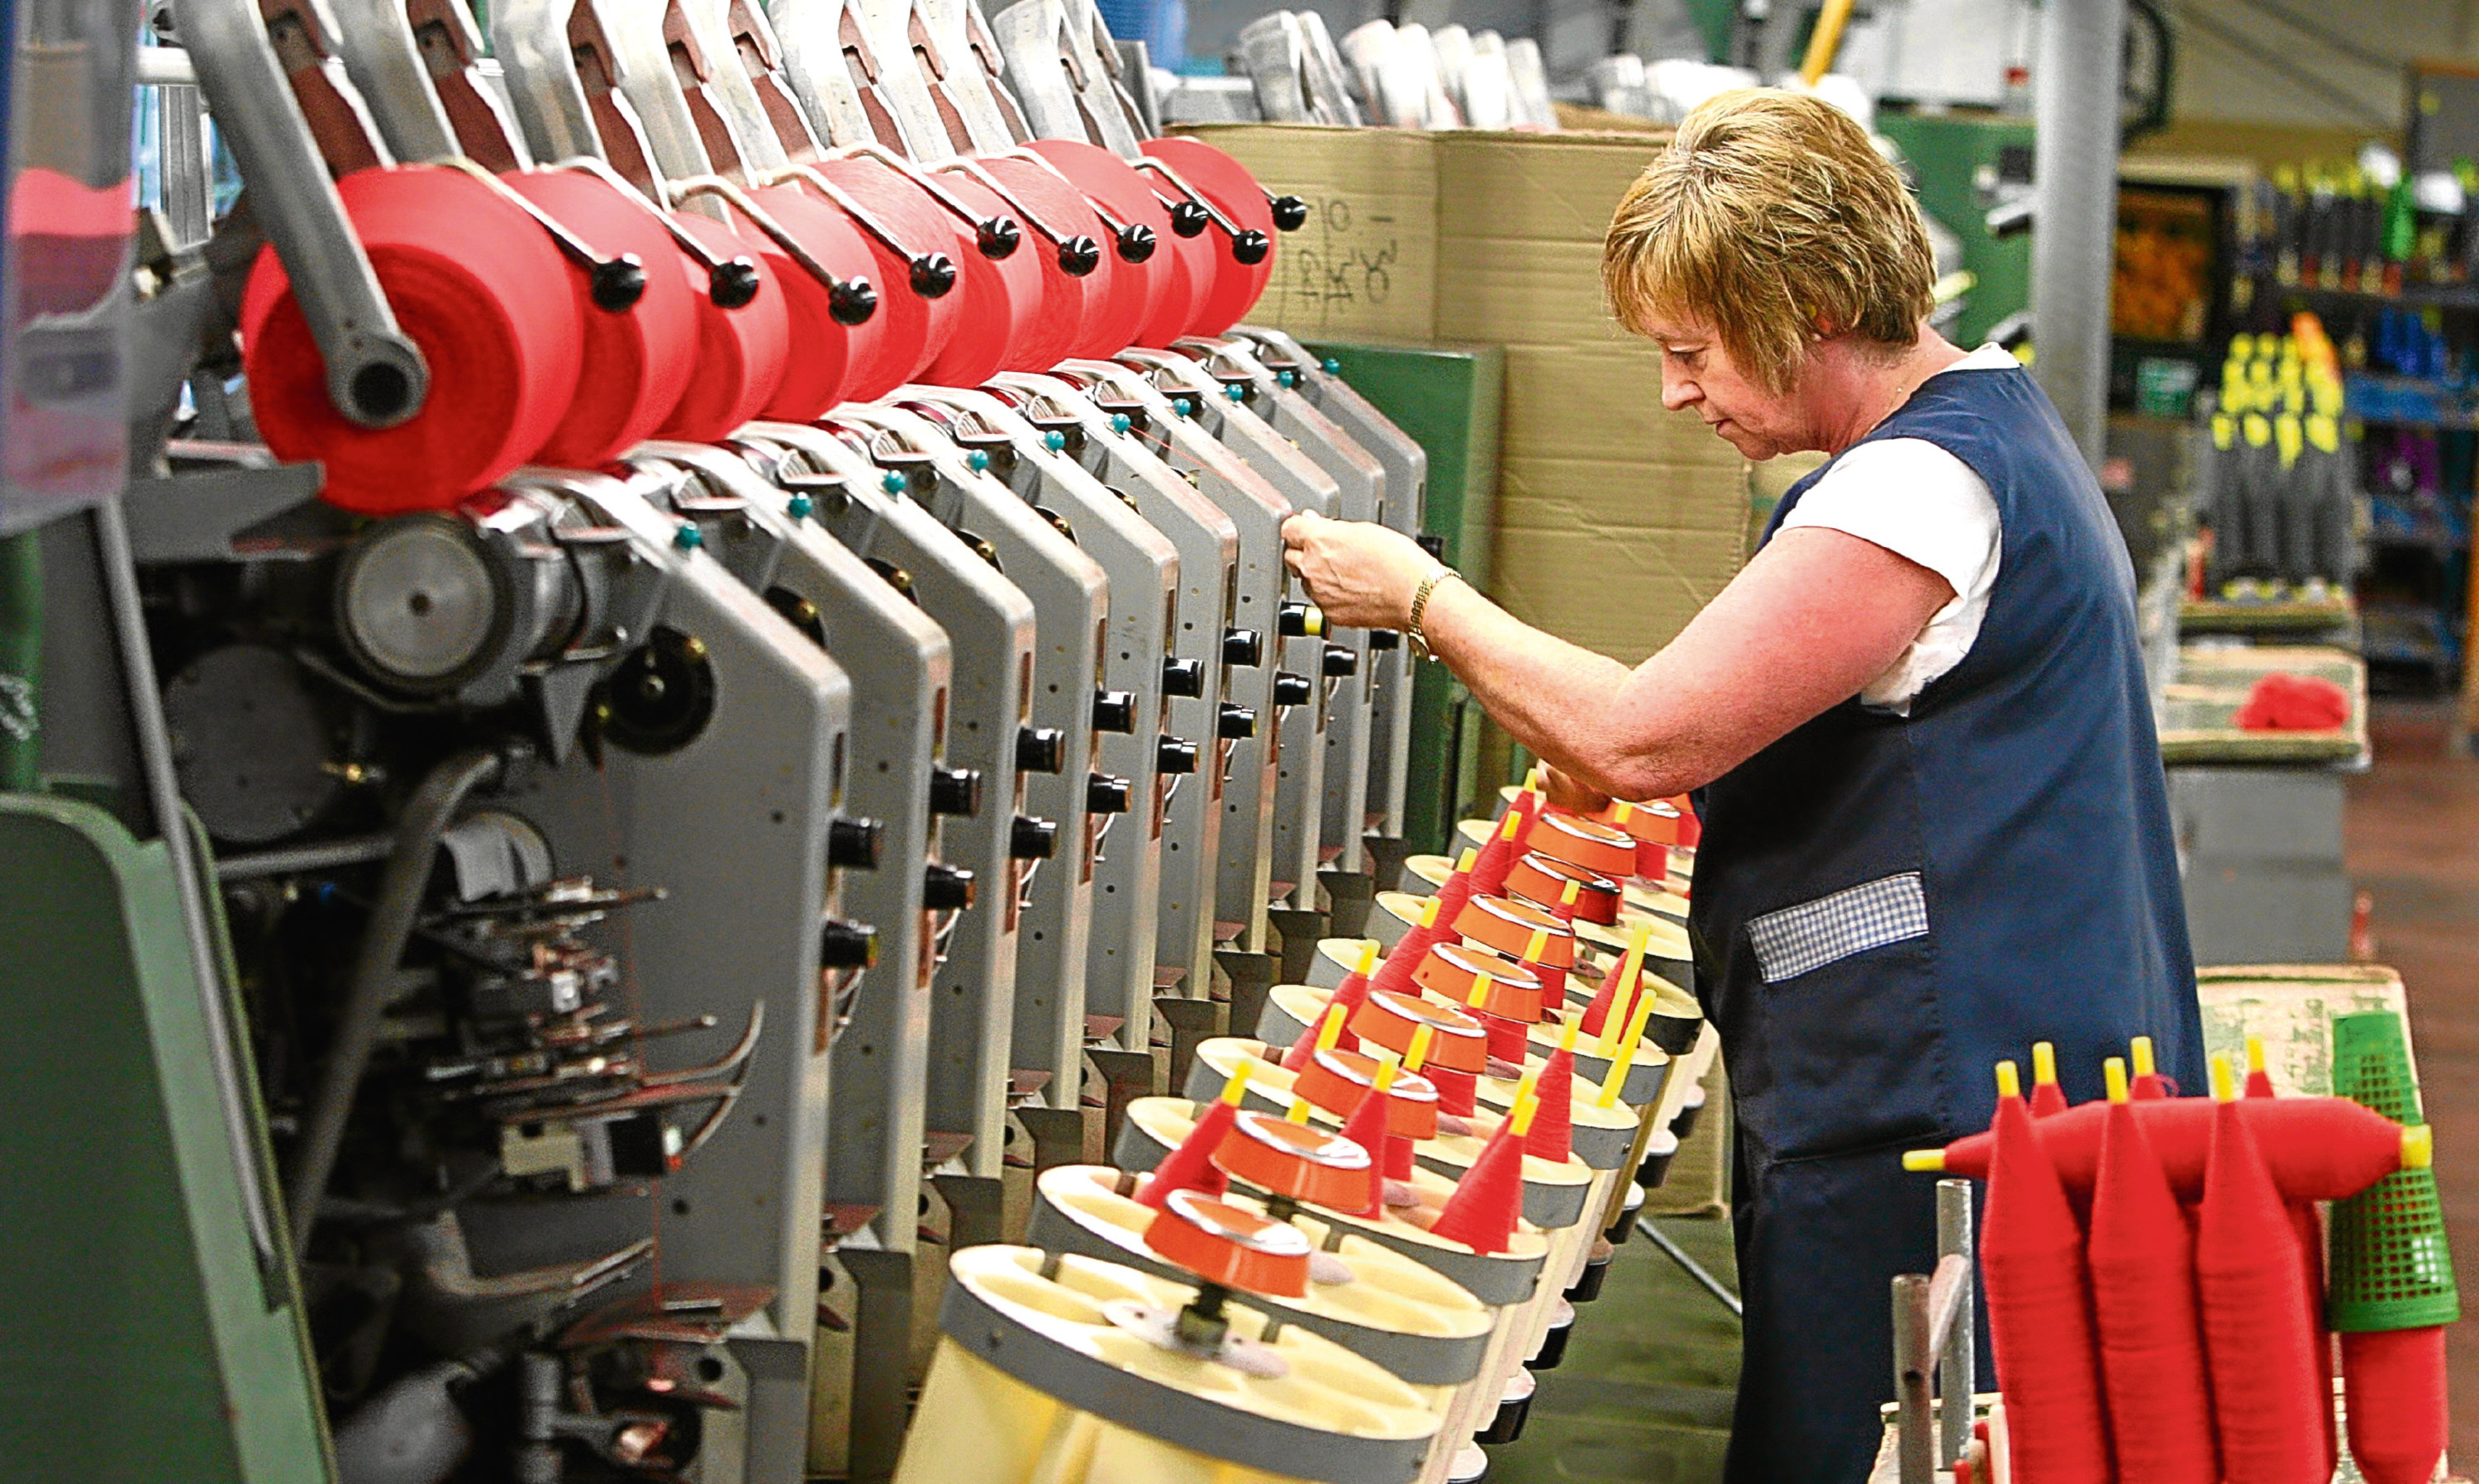 A worker involved in the cashmere yarn manufacturing process at Todd & Duncan of Kinross.